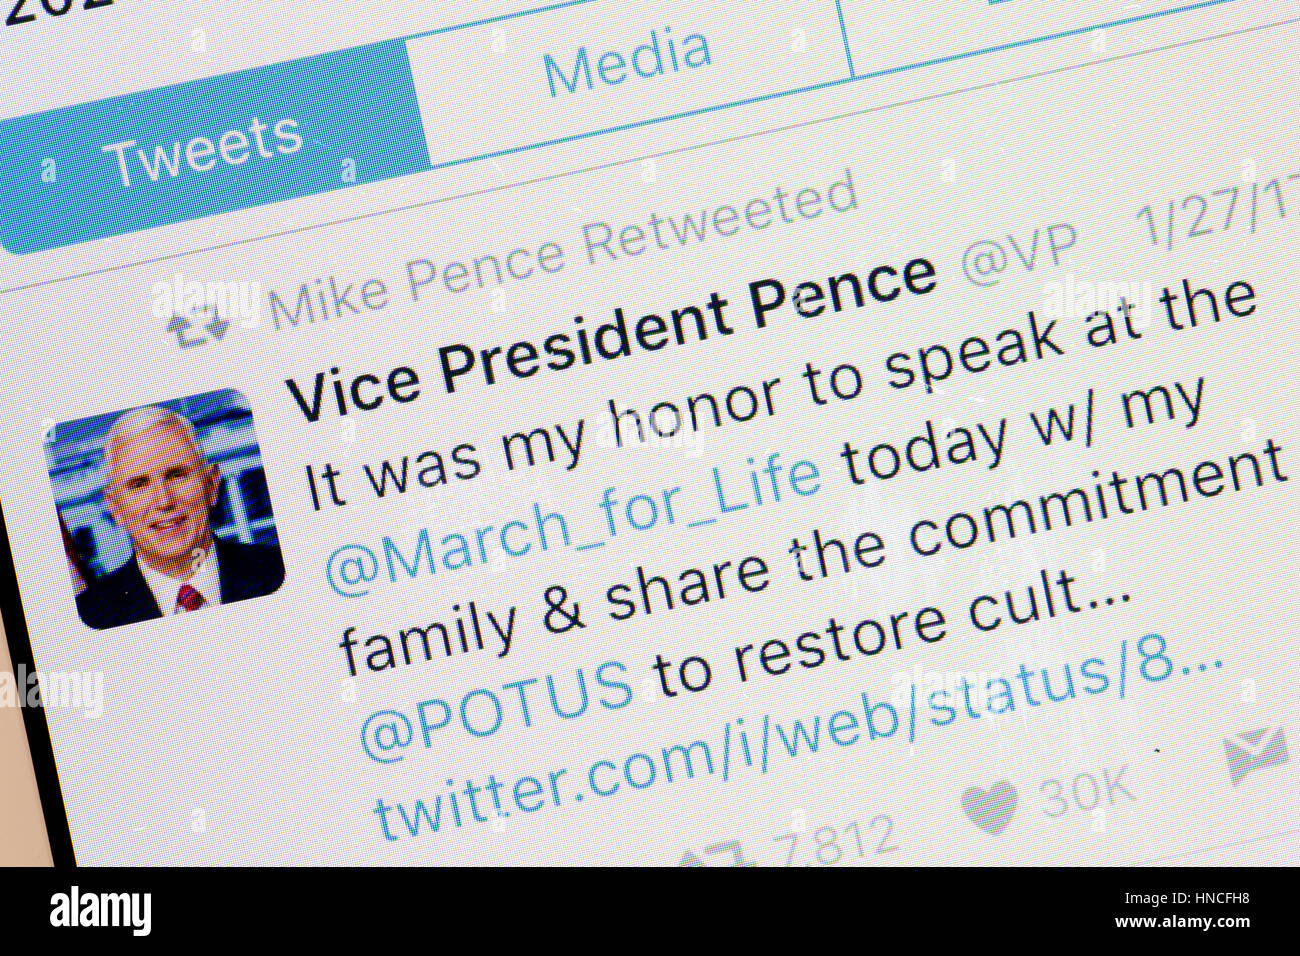 US Vice President Mike Pence Tweet on mobile phone screen - USA - Stock Image